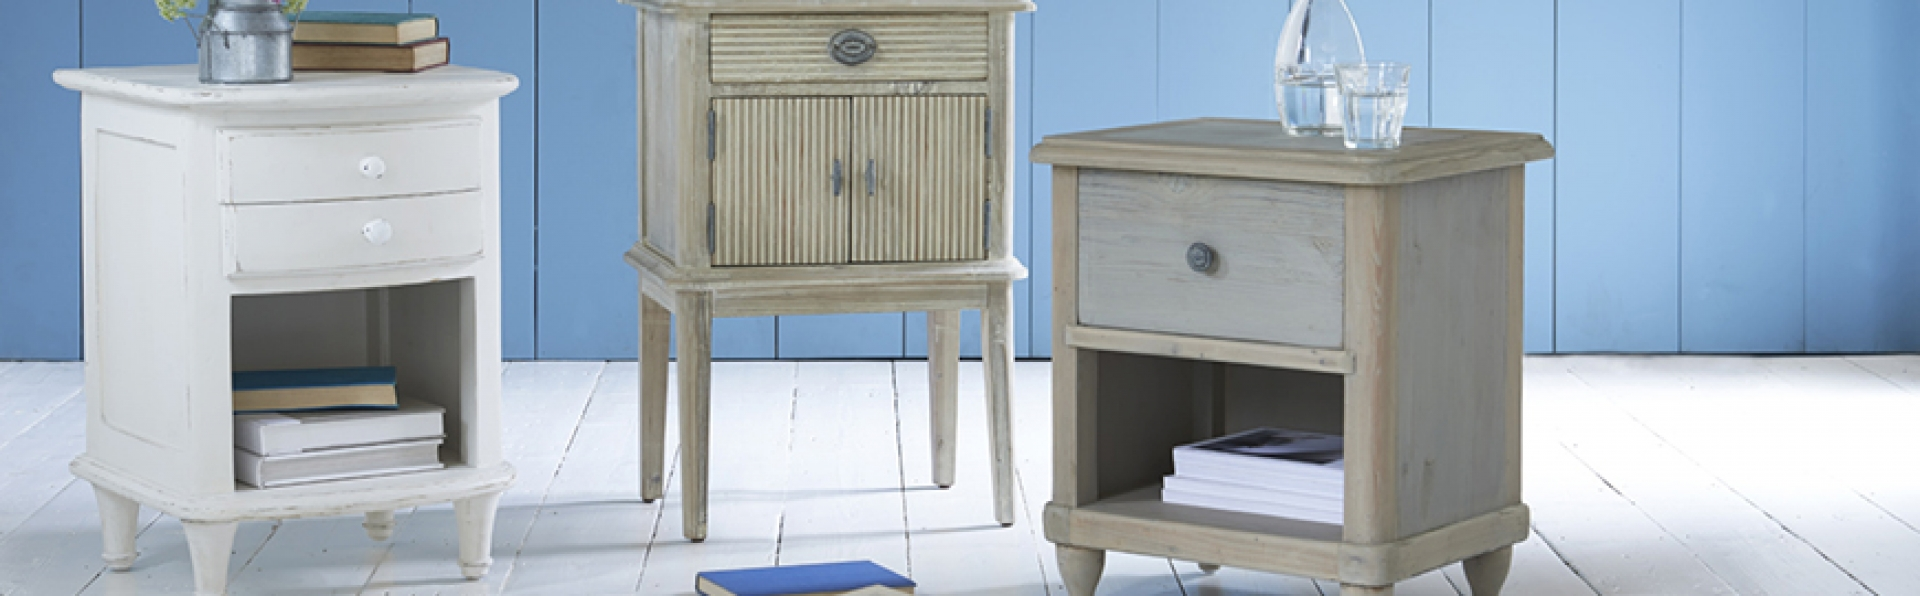 Sideboard and Hutch, Sideboard & Hutch, Small Sideboard and Hutch, Large Sideboard and Hutch